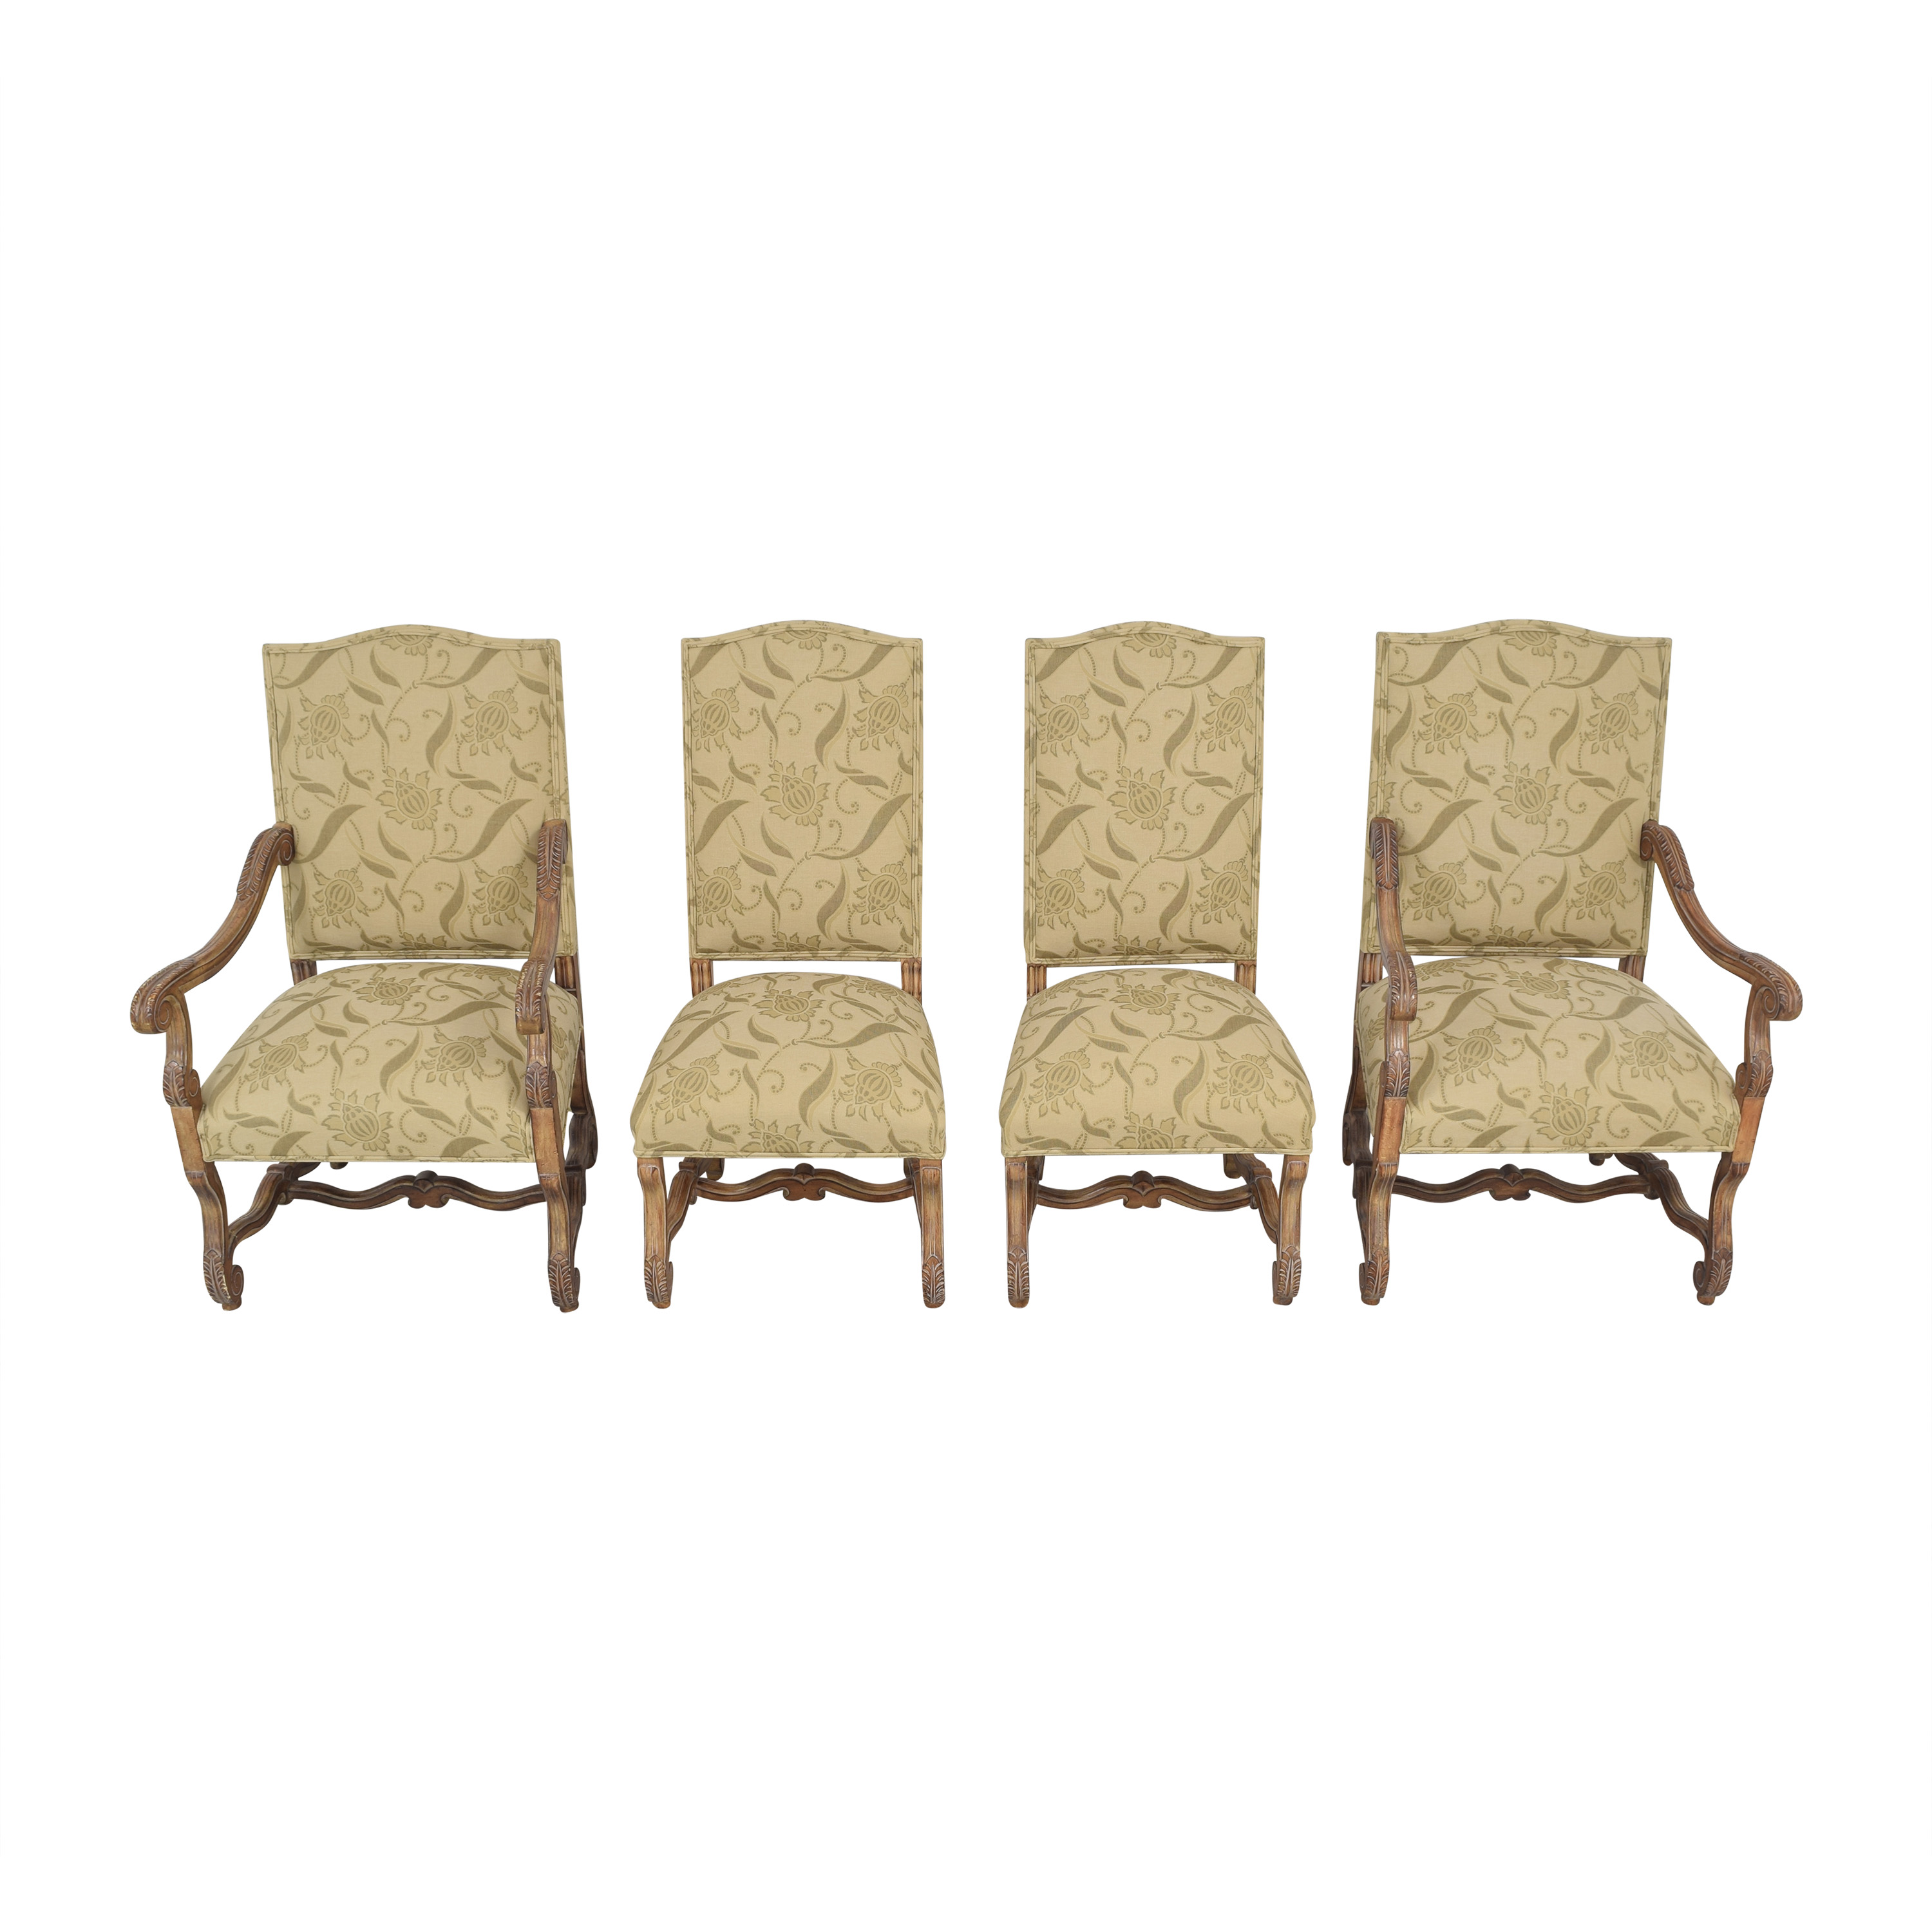 Kreiss Kreiss Rousseau Dining Chairs second hand